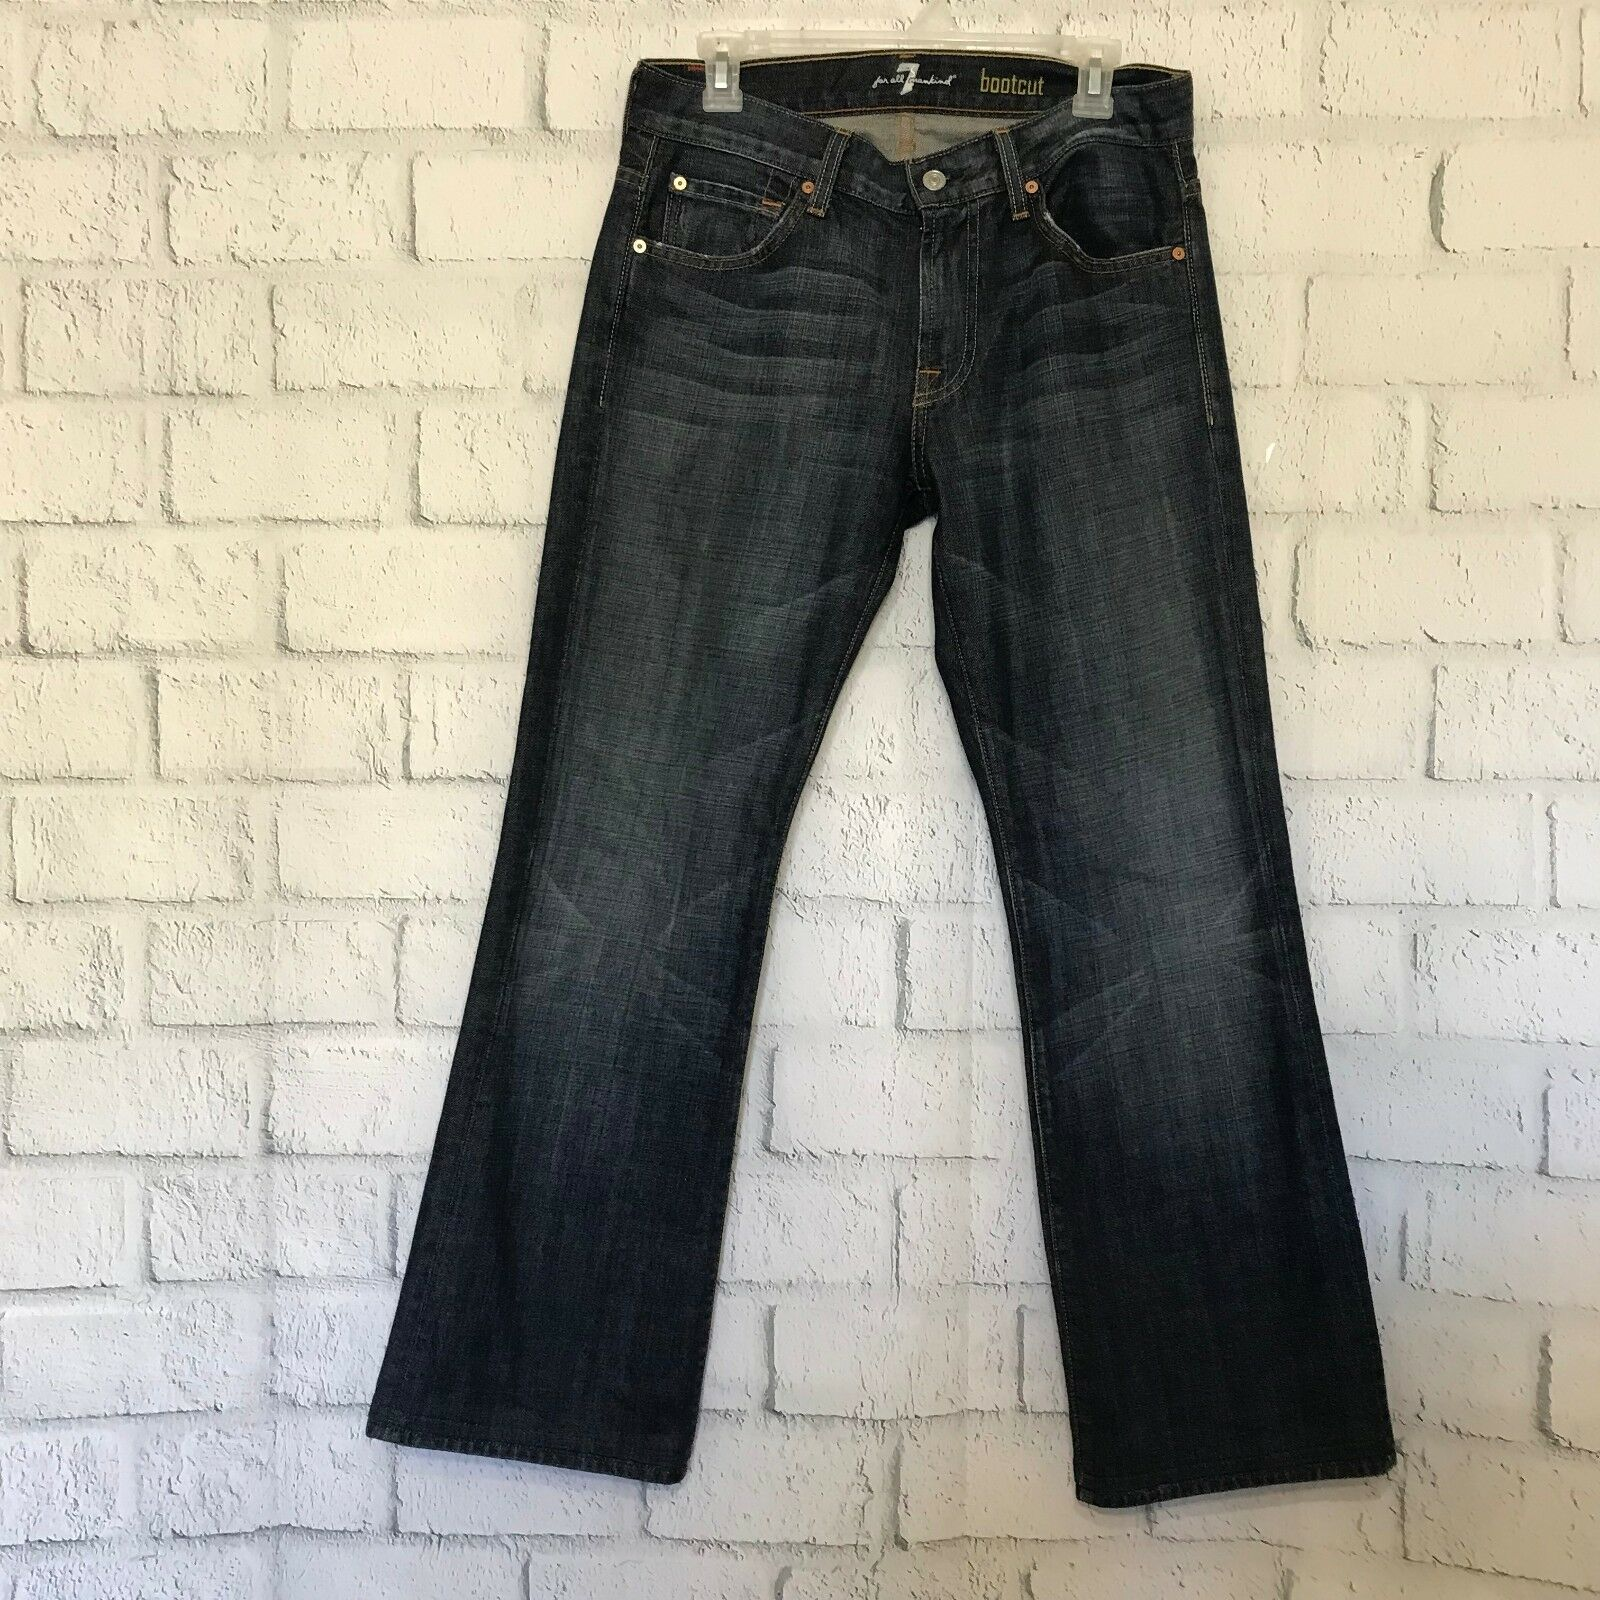 7 for All Mankind Womens Size 29 Jeans Boot Cut 31 Inseam Stretch Denim FAM